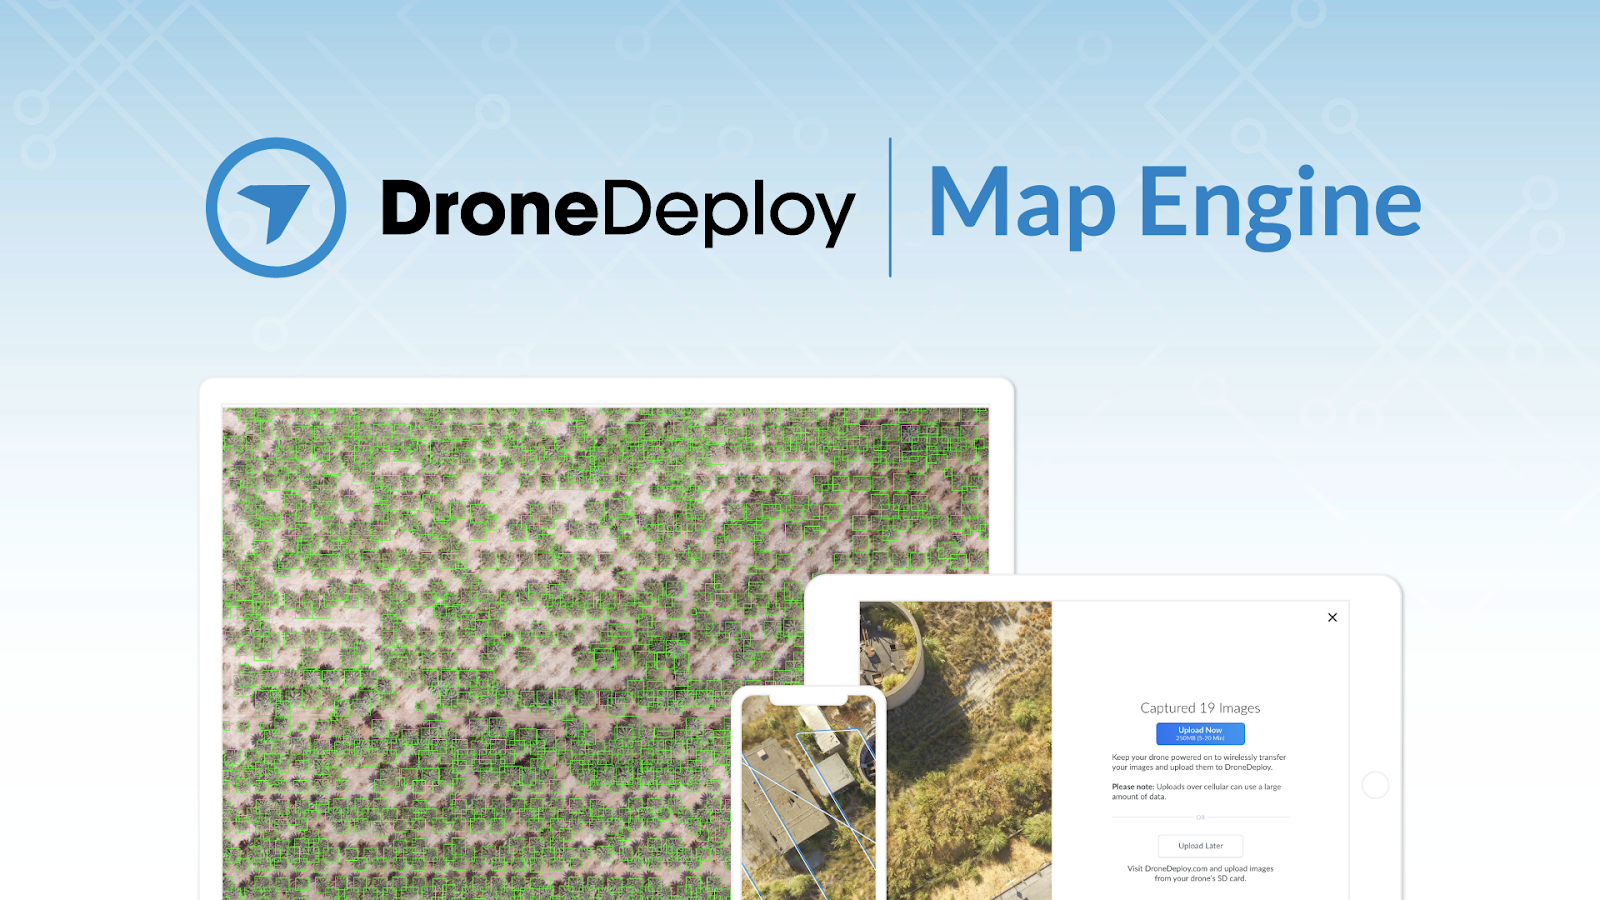 Introducing Map Engine - DroneDeploy's Blog